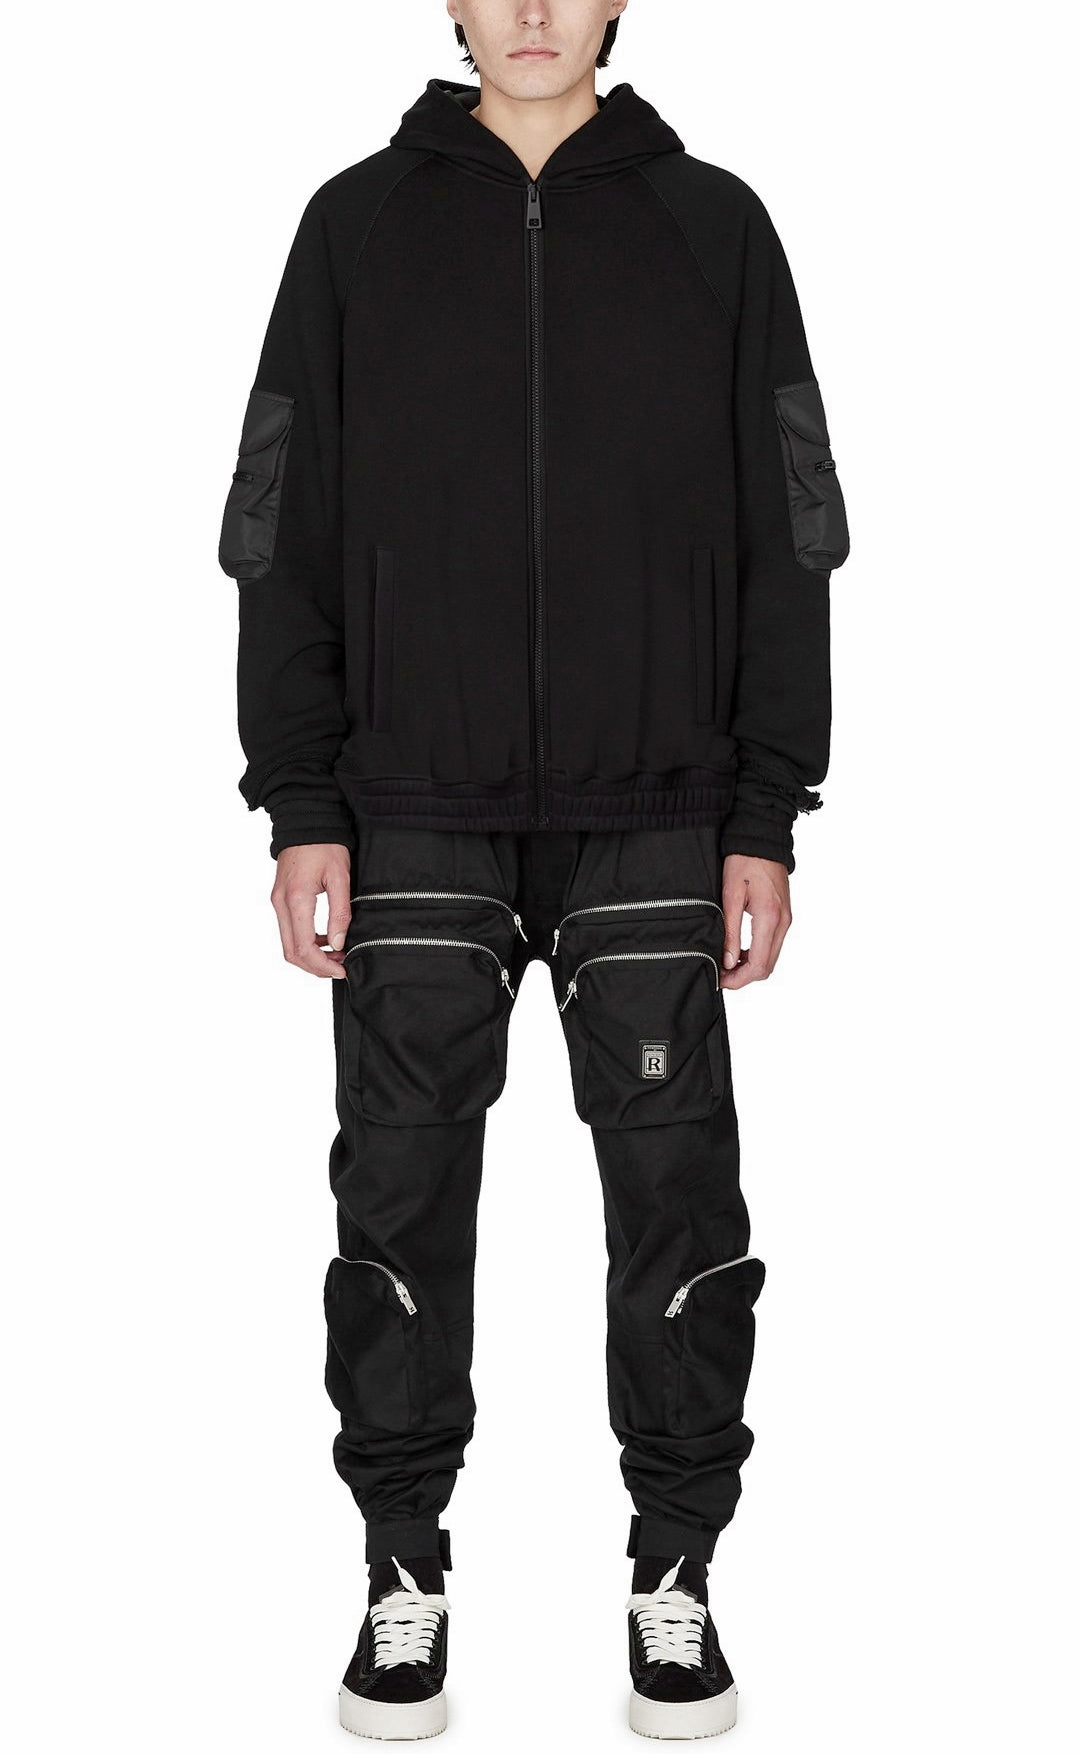 Techwear Military Zip Up Hoodie with Nylon Pocket Details